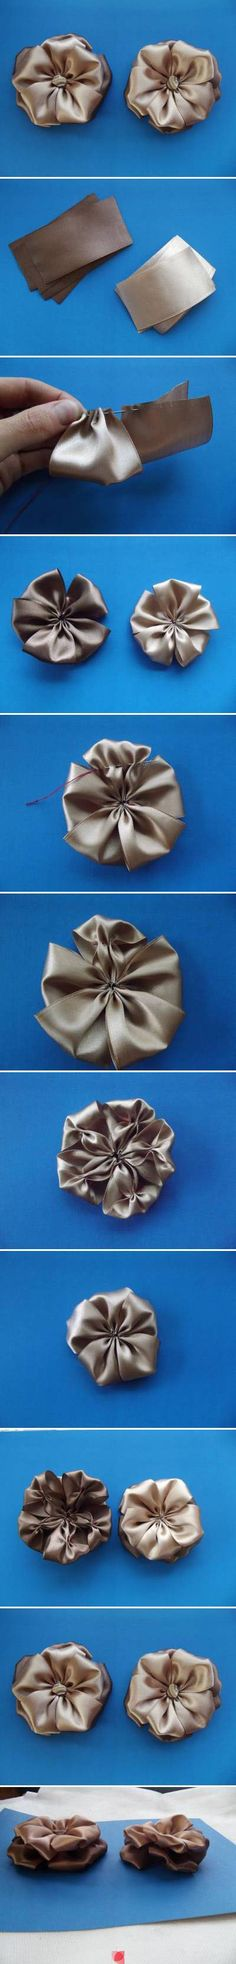 DIY Ribbon Flowers